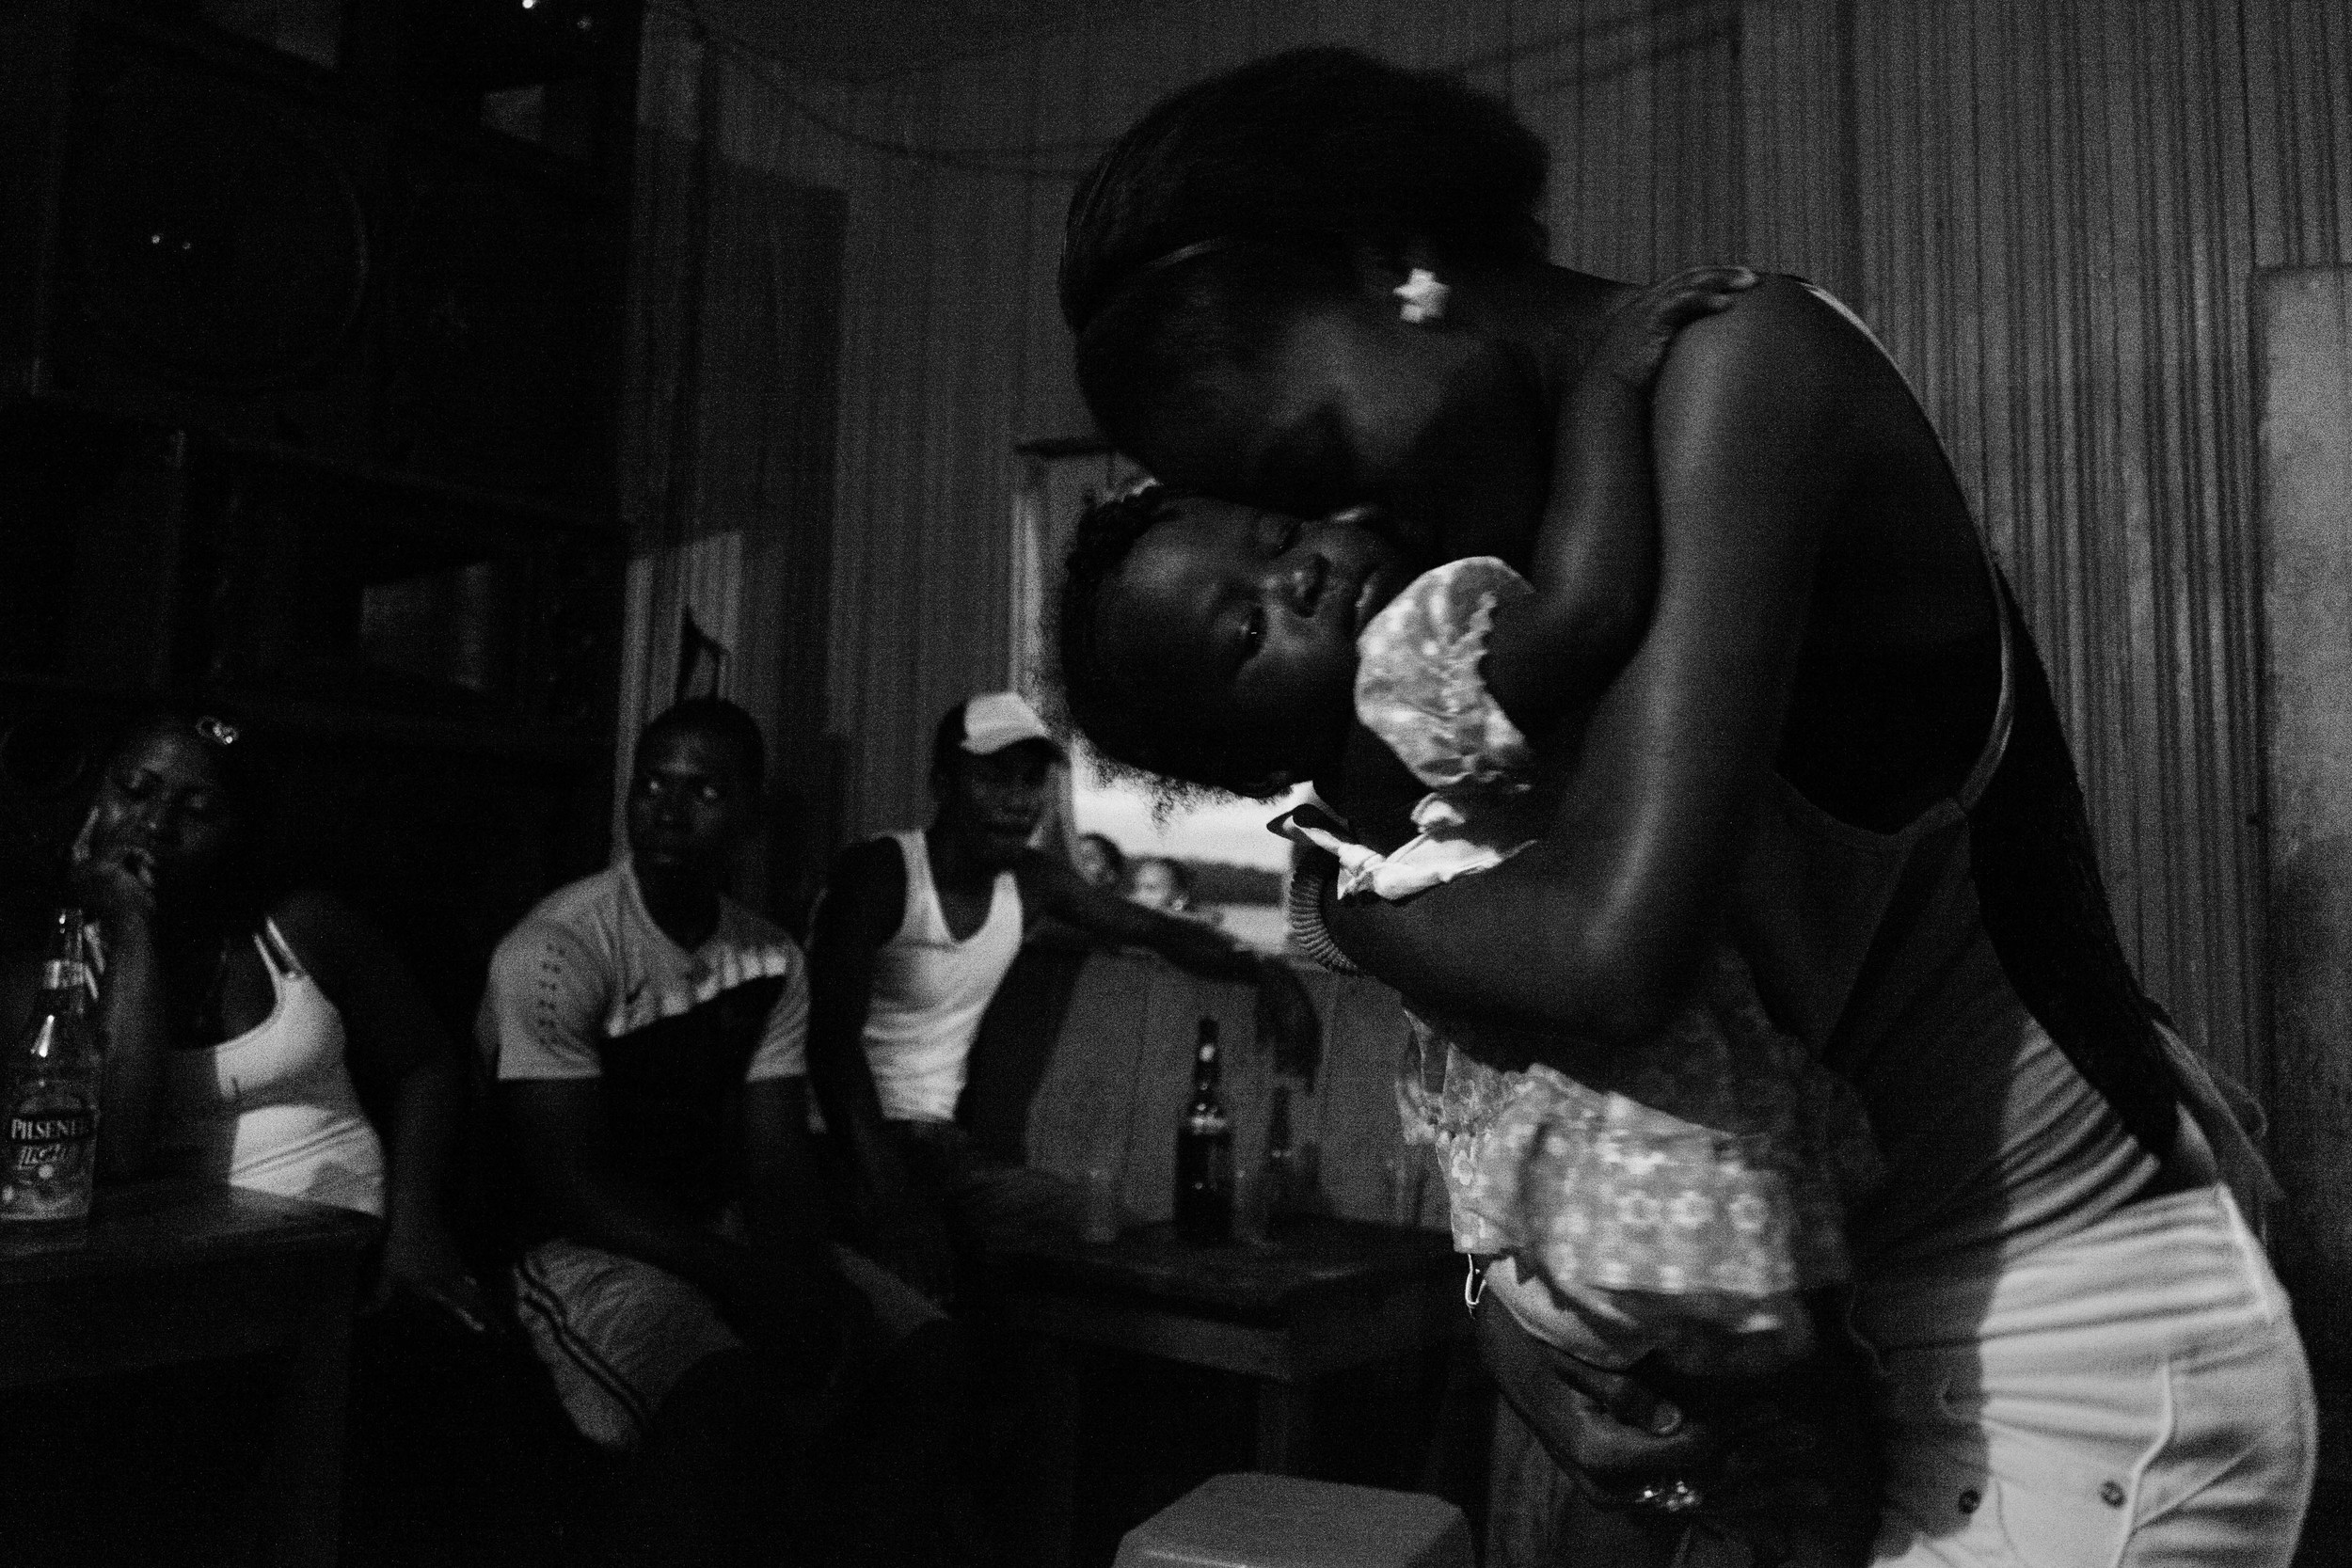 A woman dances with a baby at a bar in the community of Tambillo. In the communities, Sundays are mostly reserved for drinking and partying. Tambillo, Ecuador. 2014.